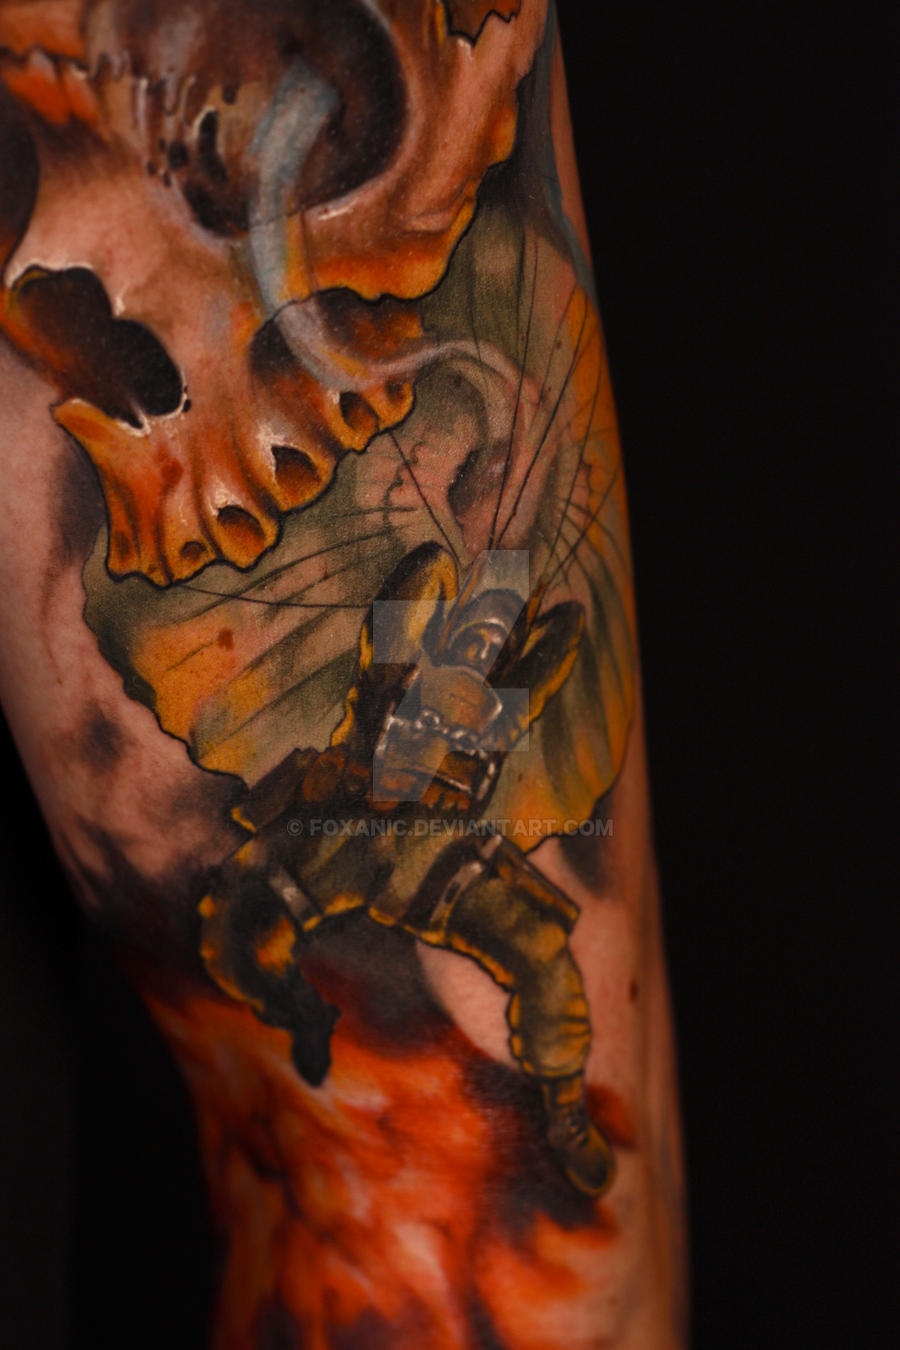 Paratrooper tattoo by foxanic